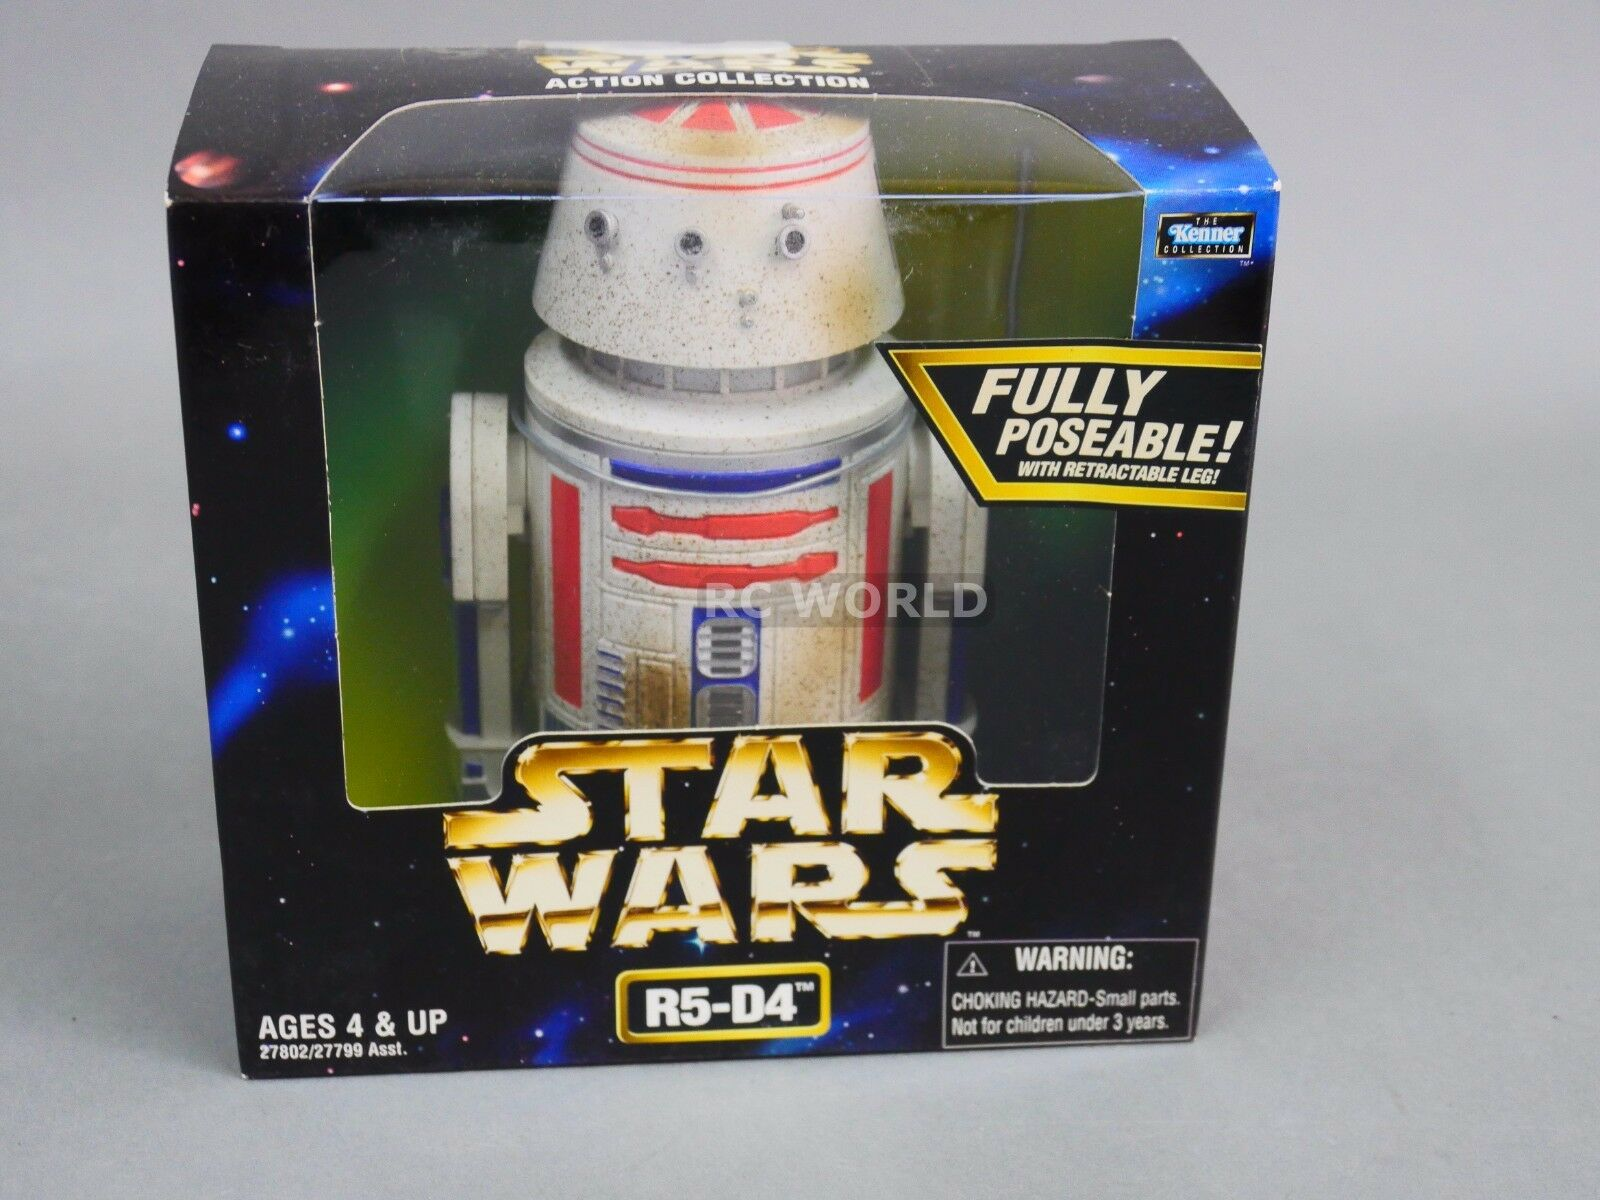 Vintage Star Wars  R5-D4 Droid  Action Collection  6